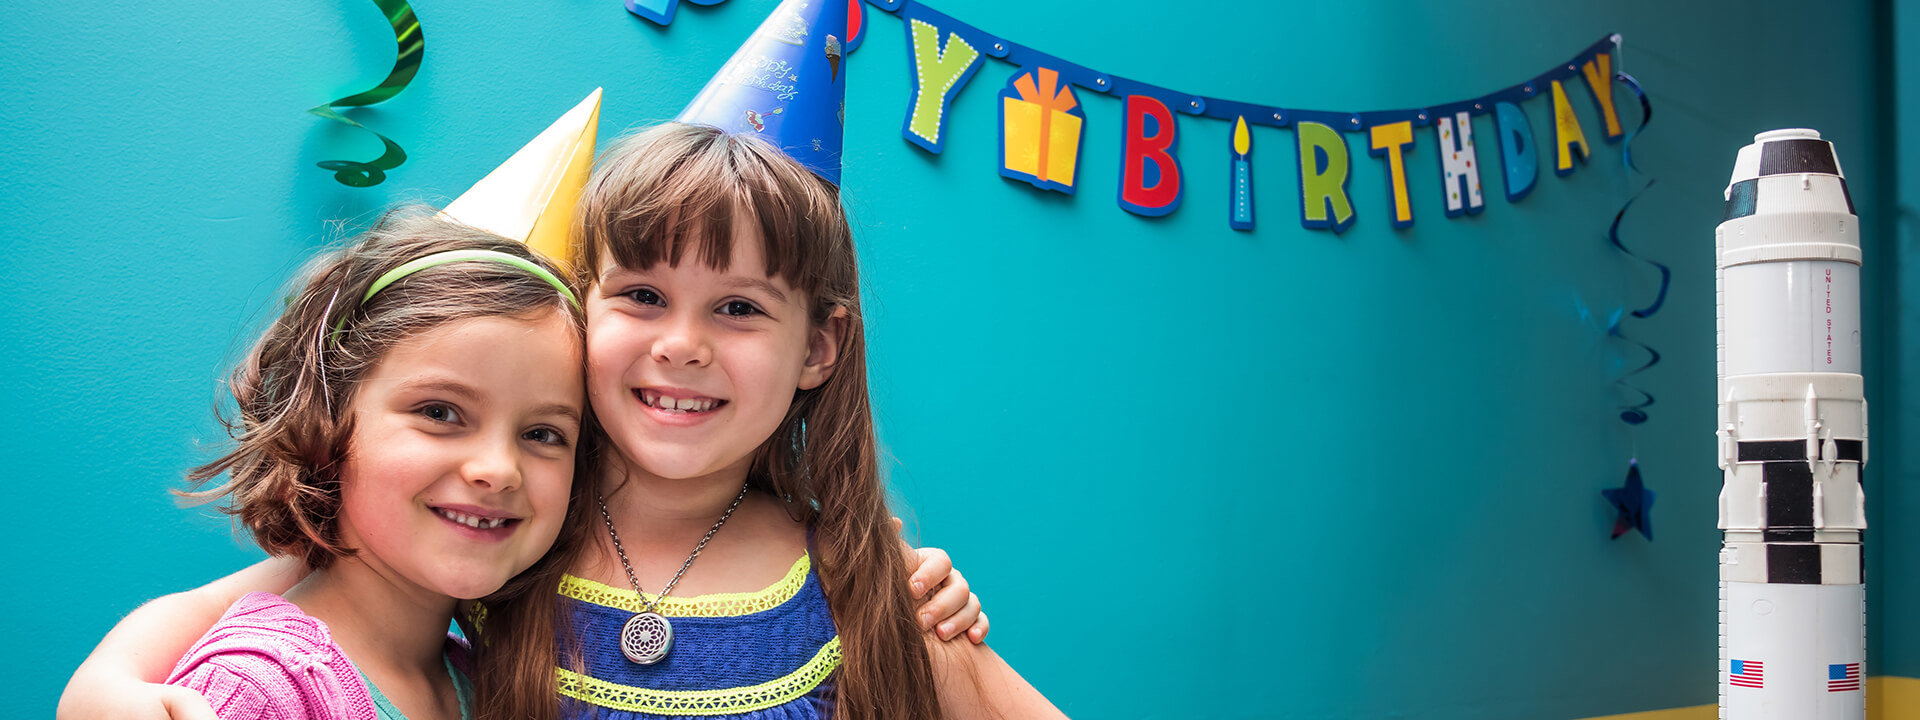 Two young children smiling and hugging during a birthday party at Orlando Science Center.